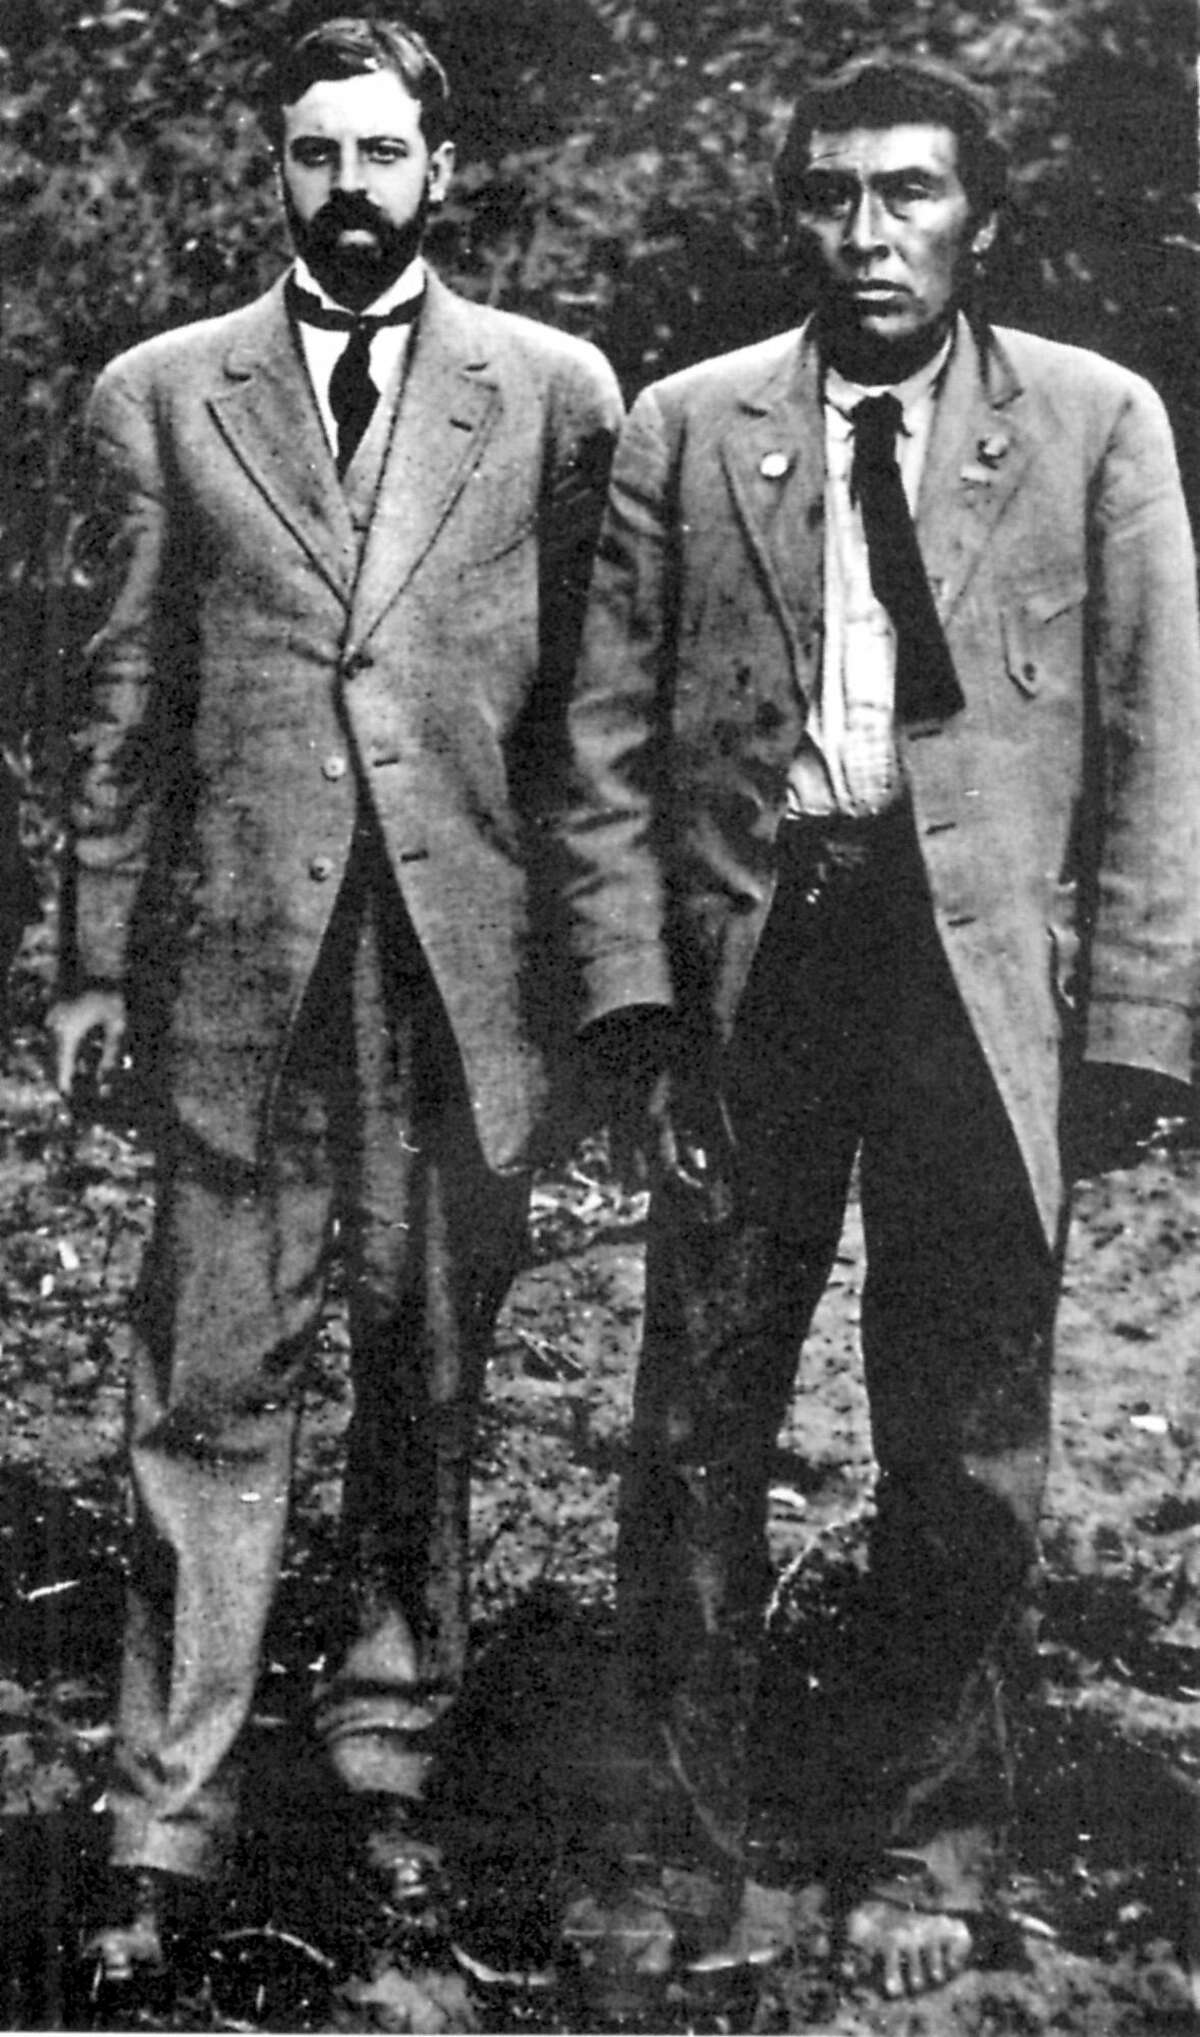 Alfred Kroeber (left) and Ishi in 1911. Ishi, considered the last aboriginal California Indian, in Tehama County, in 1914. Ishi was found near Oroville in 1911 and taken in by anthropologist Alfred Kroeber.